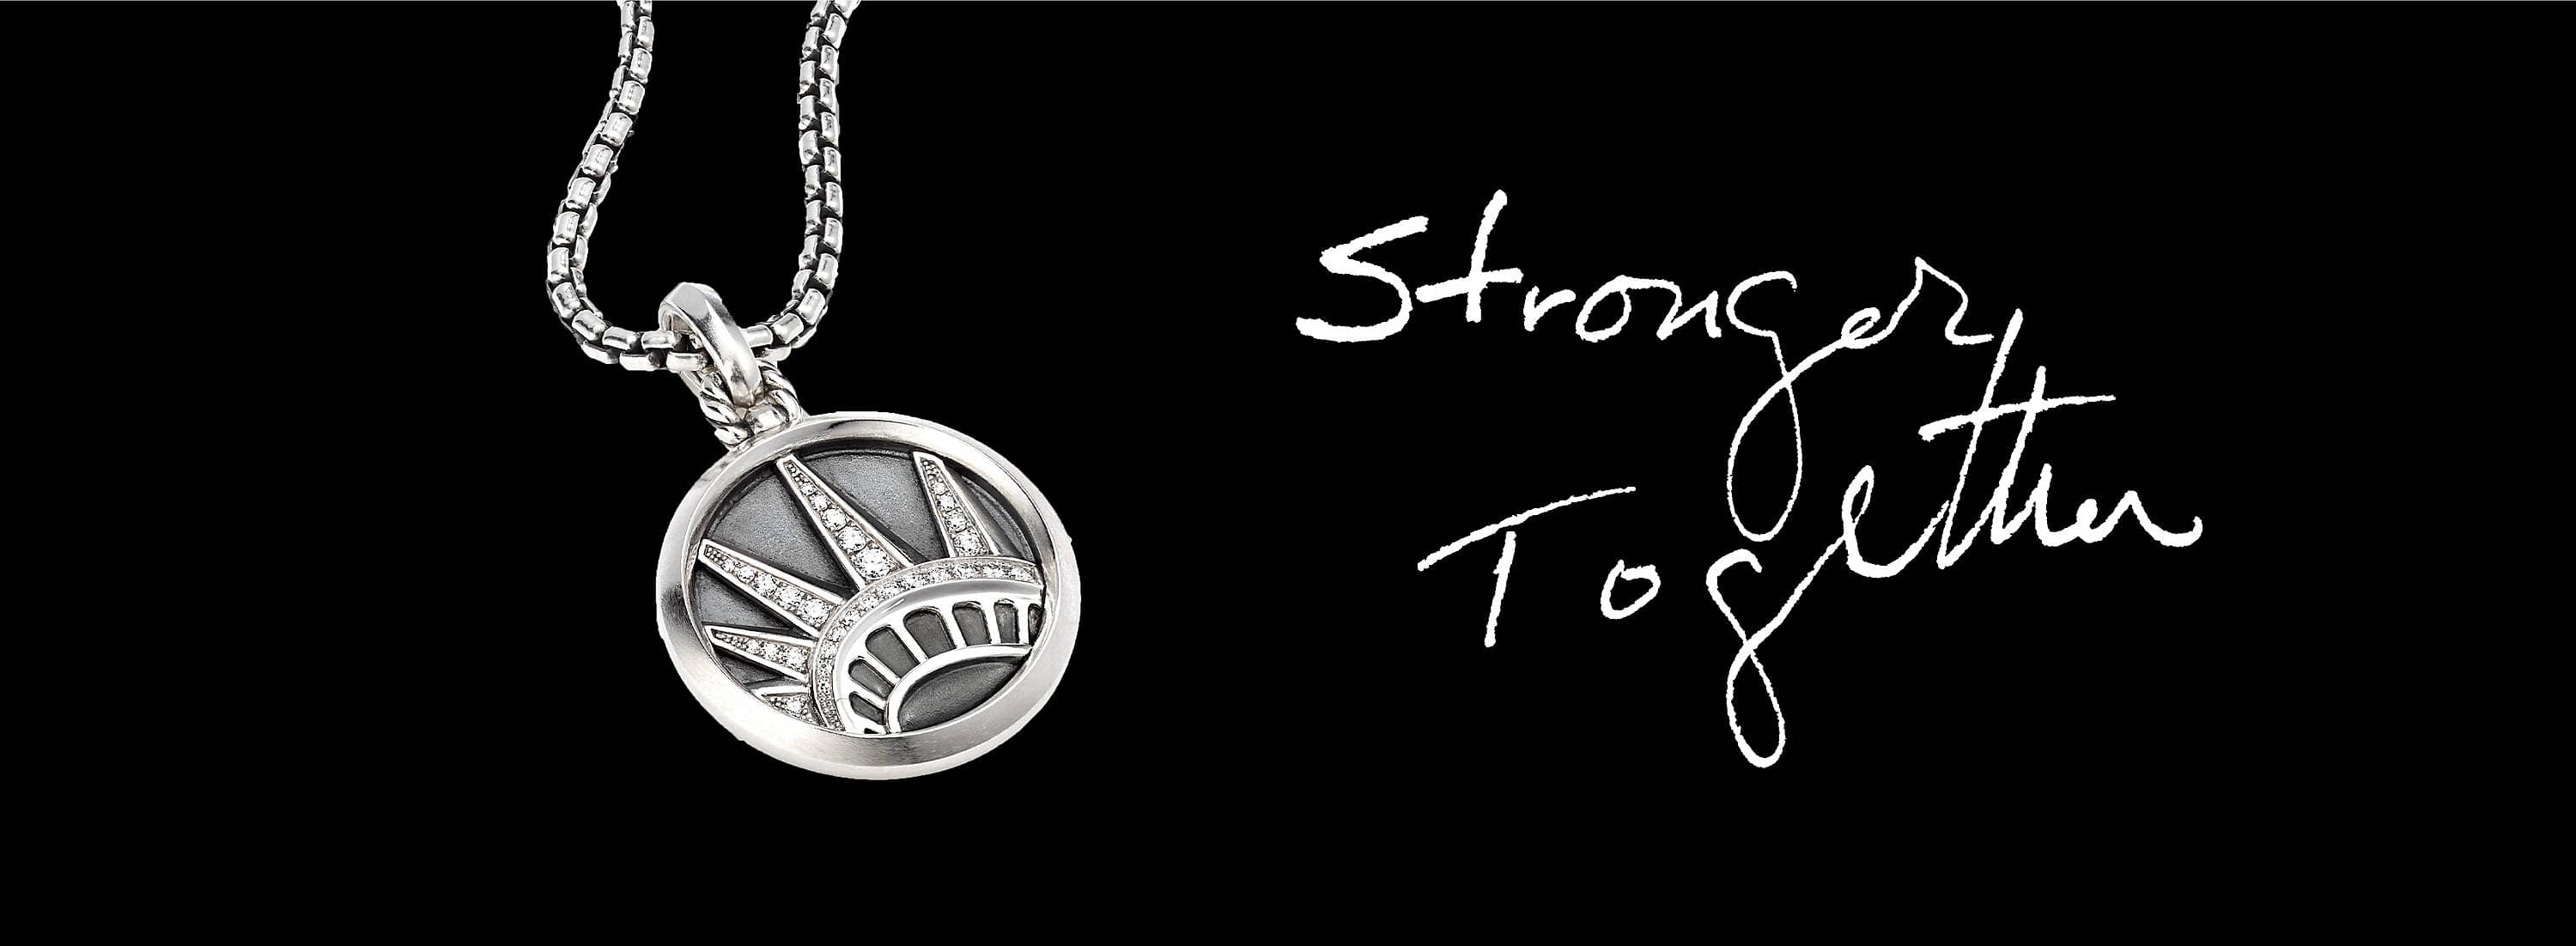 "A color photo shows a David Yurman NYC Statue of Liberty charm strung on a box-chain necklace and laying against a black background next to the words ""Stronger Together"" written by hand. The jewelry is crafted from sterling silver with or without pavé white diamonds."